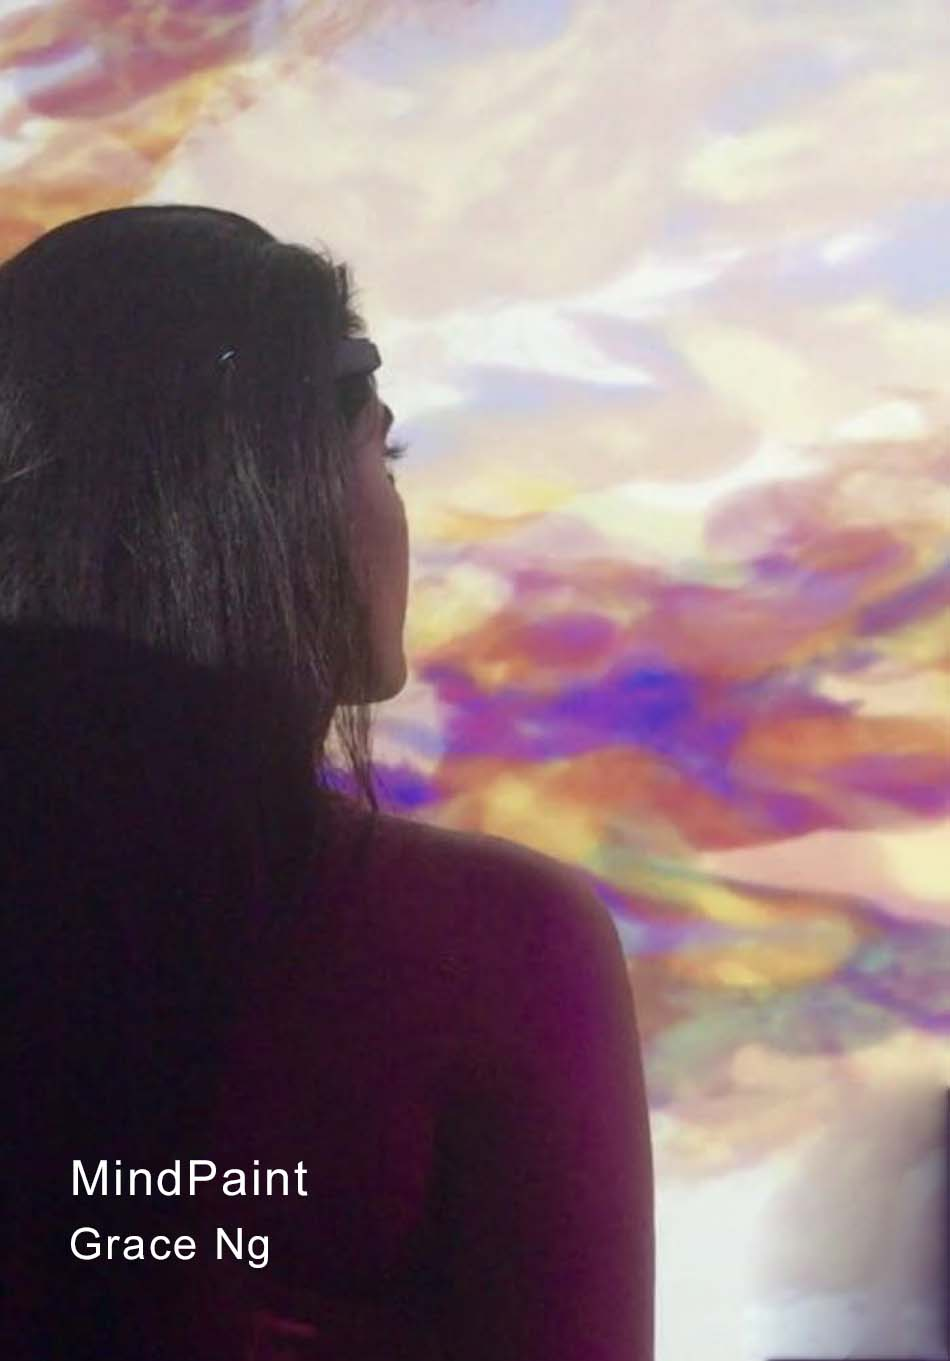 Grace Ng's Mind Paint Interactive Installation will be featured in the Experiential NeuroLab.